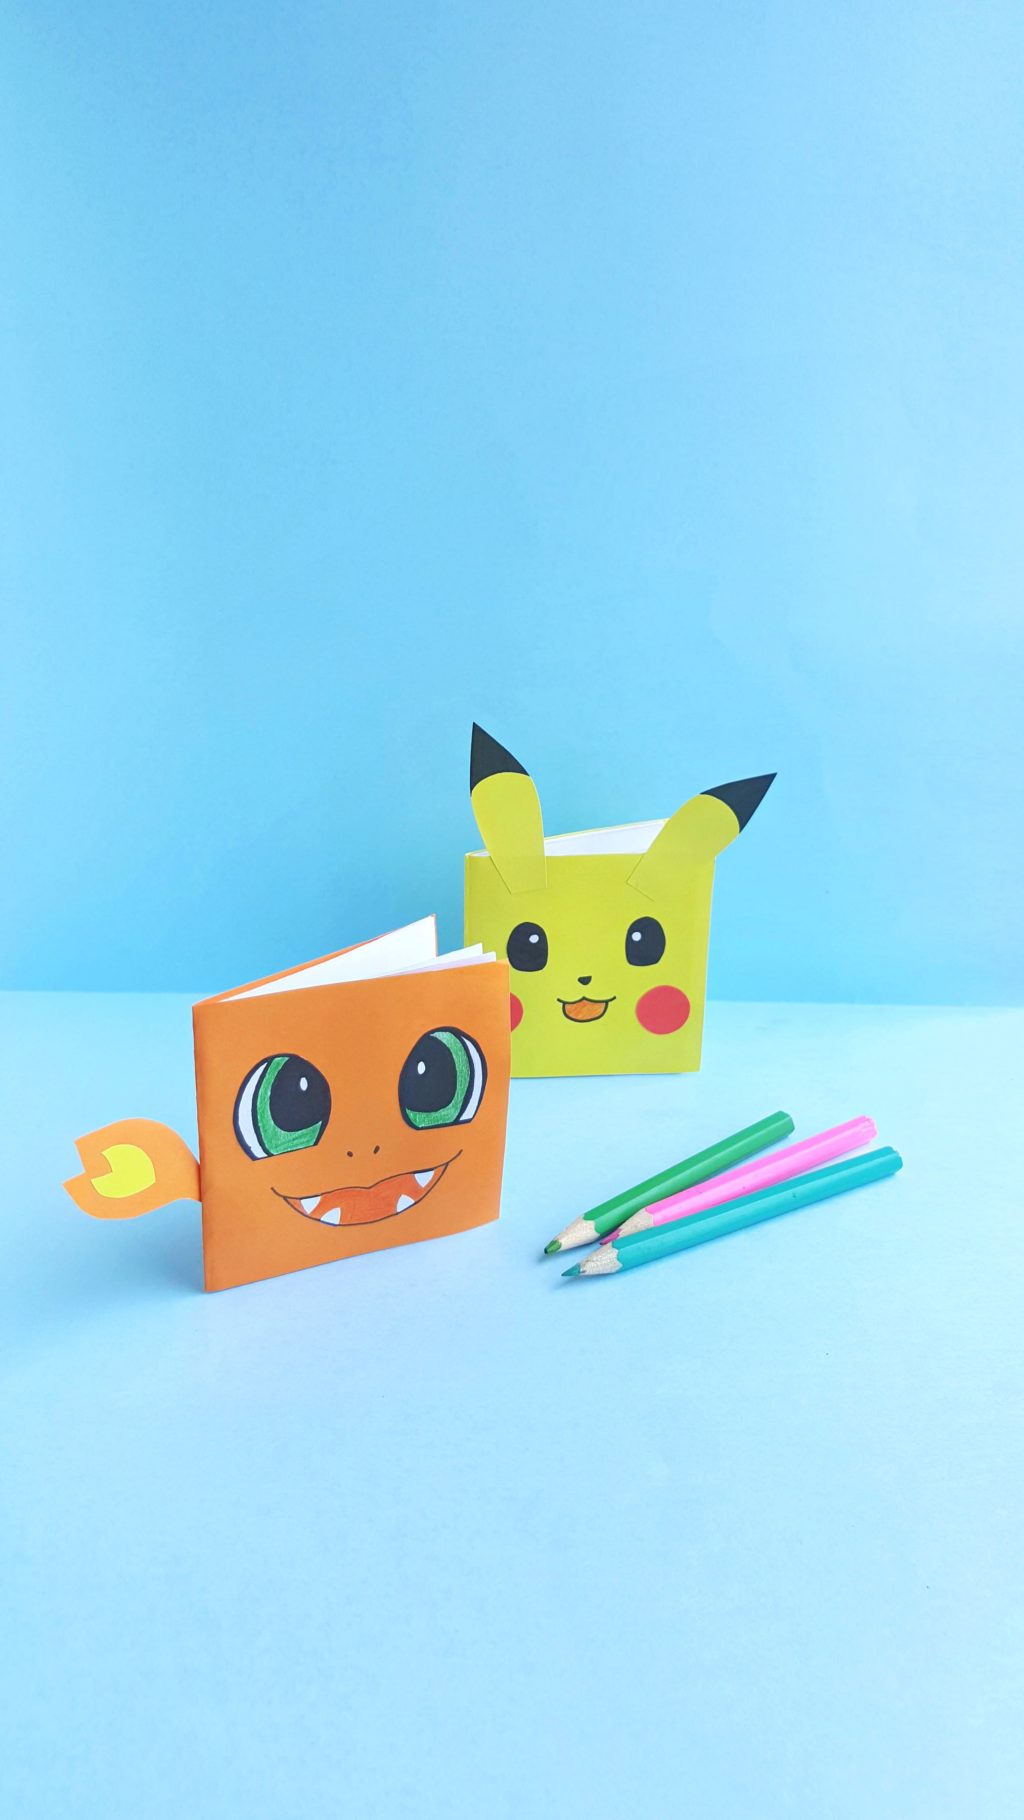 A mini Charmander notebook and Pikachu notebook are shown standing up with coloured pencils.